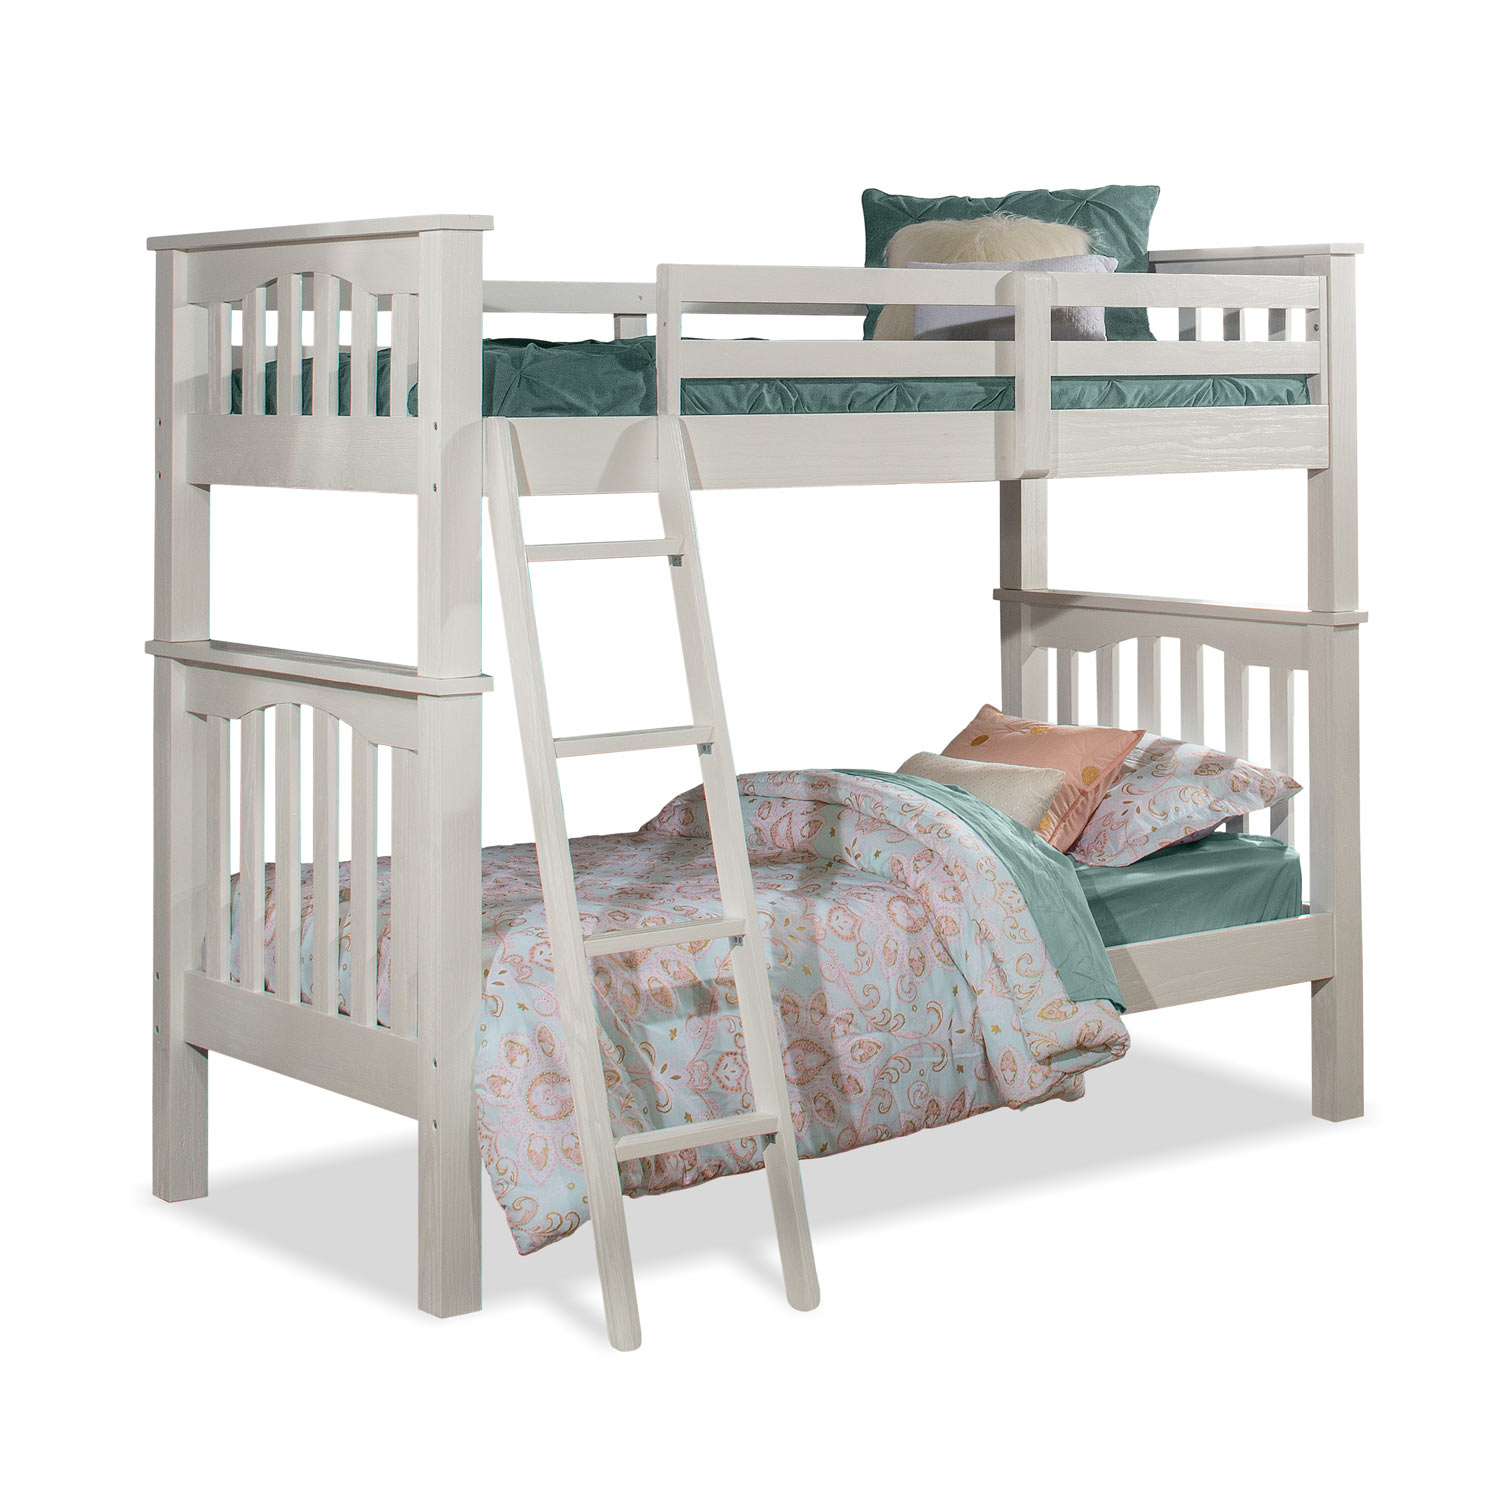 NE Kids Highlands Haper Twin/Twin Bunk Bed - White Finish